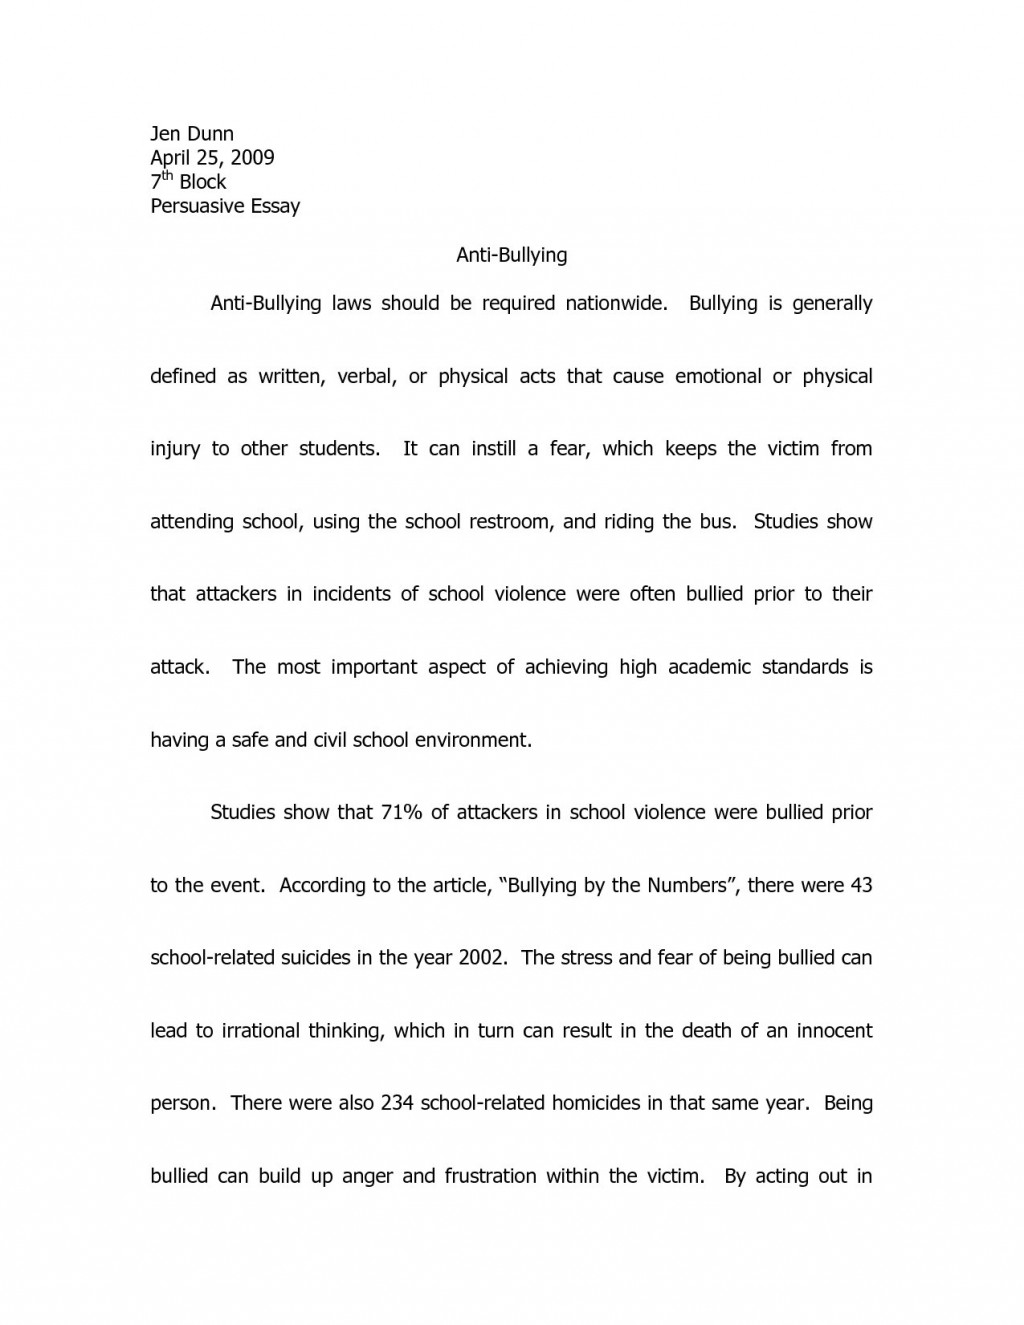 001 Essay Example Persuasive About Bullying On Speech Good Books To Write Essays Topics Cyberbullying Tudors Ks2 Websi Cyber Stunning In Schools Introduction Tagalog Large